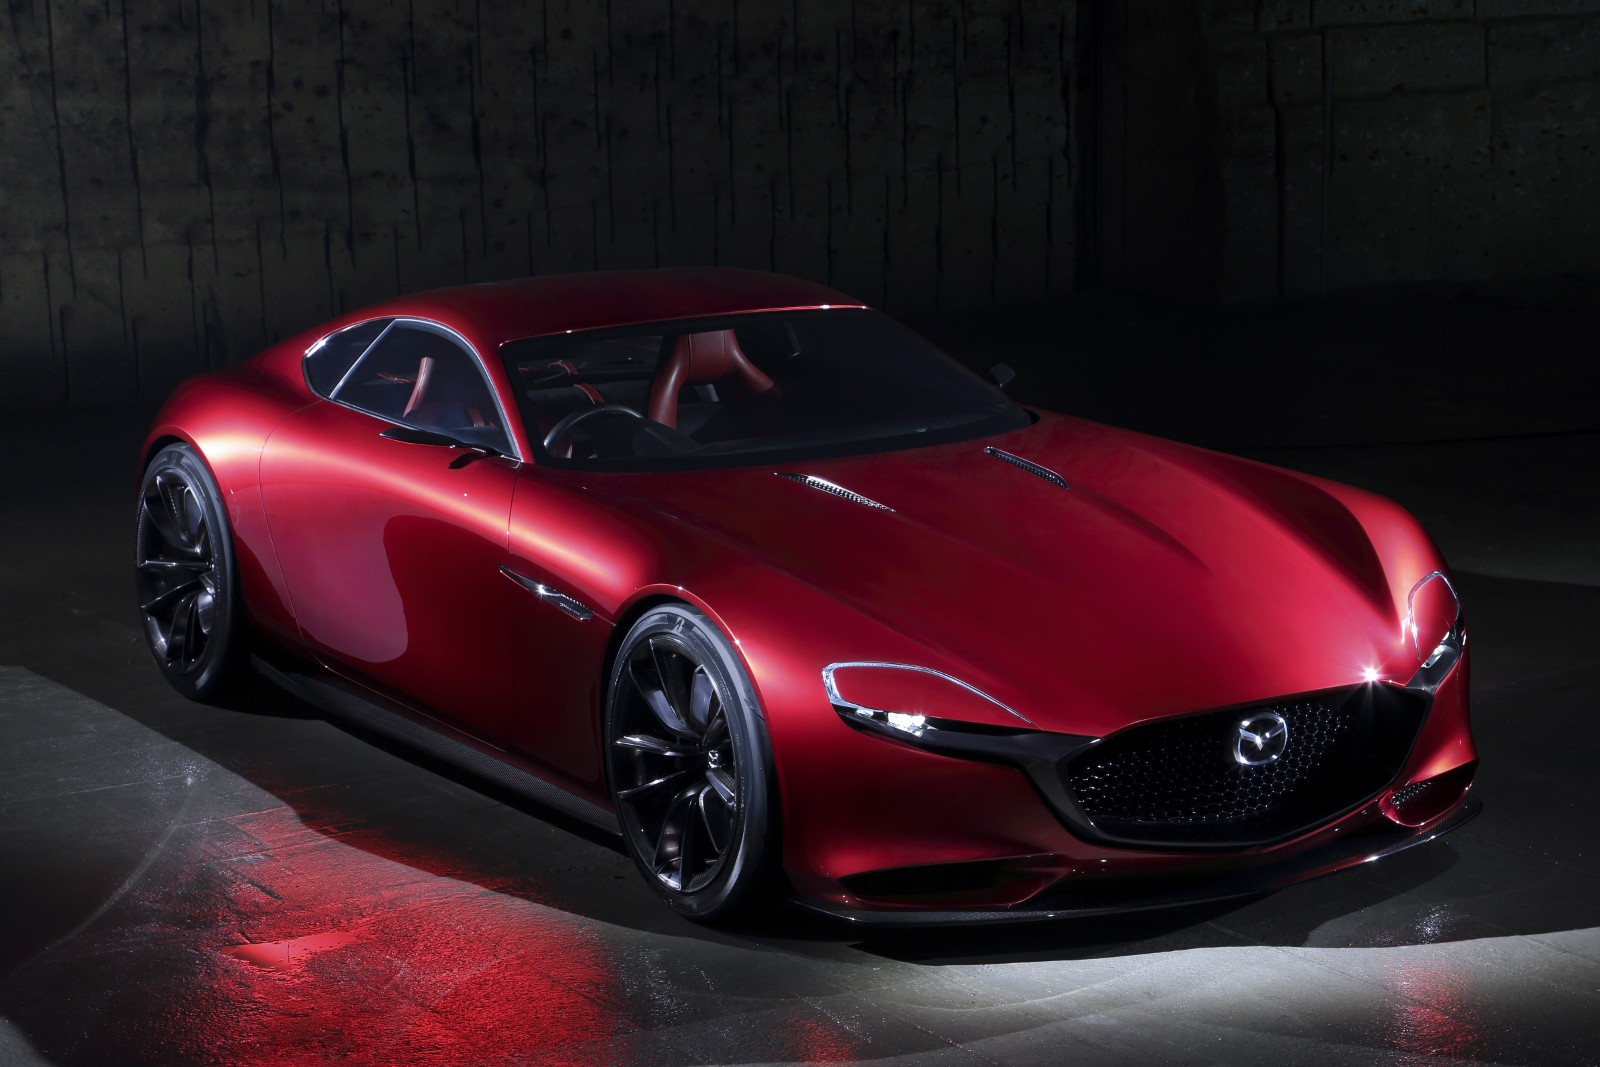 Best Confirmation Yet Mazda Rotary Engine Is Happening For Rx 9